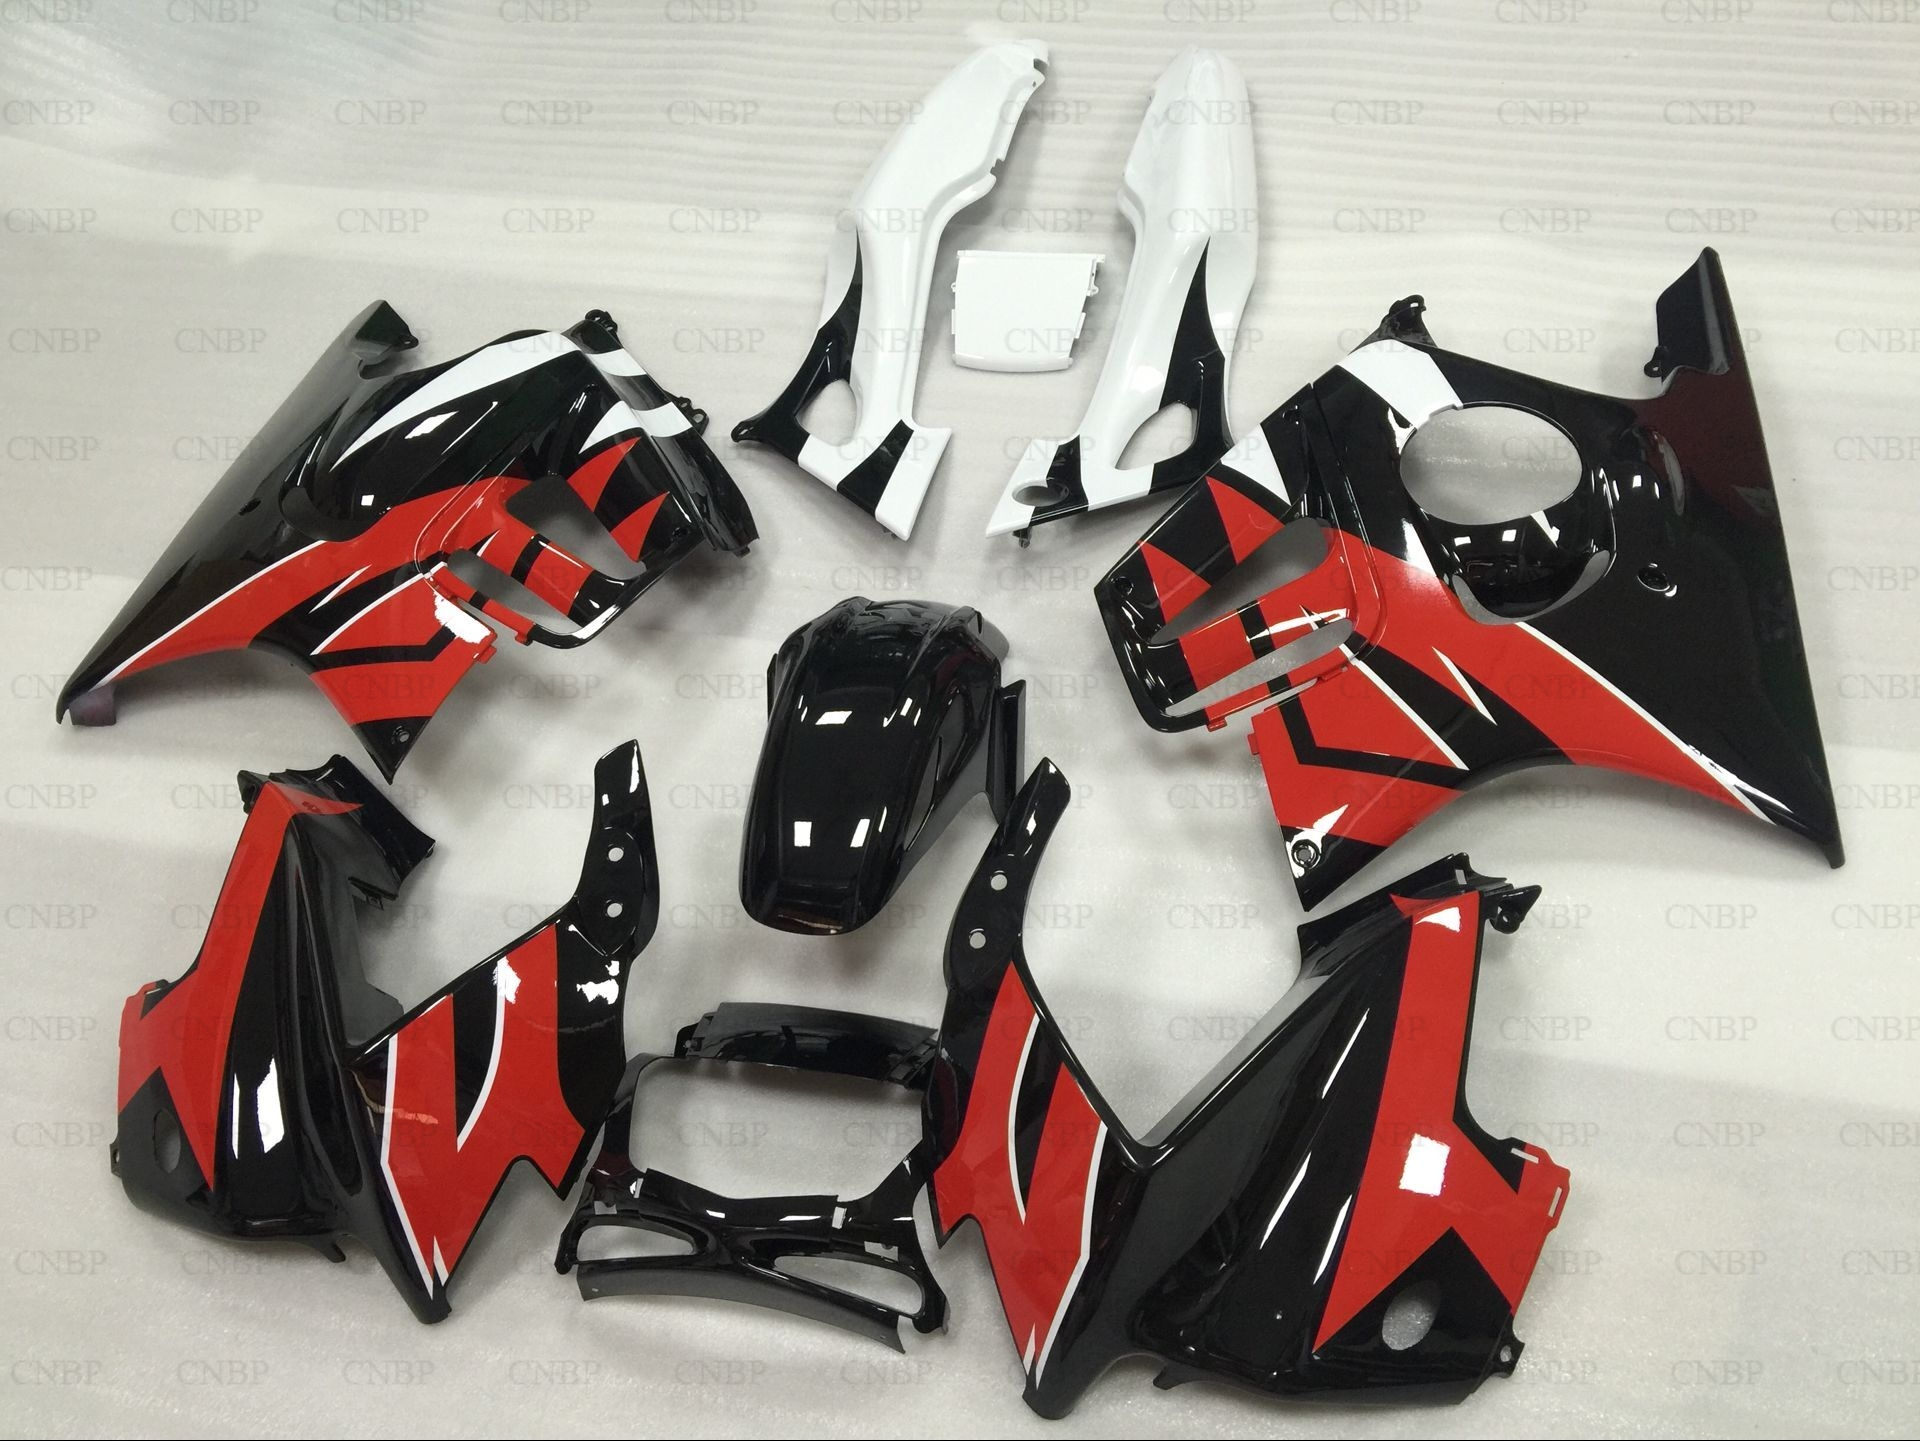 Body Kits CBR 600 F3 95 96 Abs Fairing CBR600 F3 97 98 1995 - 1998 Black Red Plastic Fairings CBR600 F3 1996 1197 abs fairing gsxr600 96 97 fairing kits gsxr 600 96 97 1996 2000 white red flame motorcycle fairing gsx r600 1998 page 2 page 8 page 2 page 9